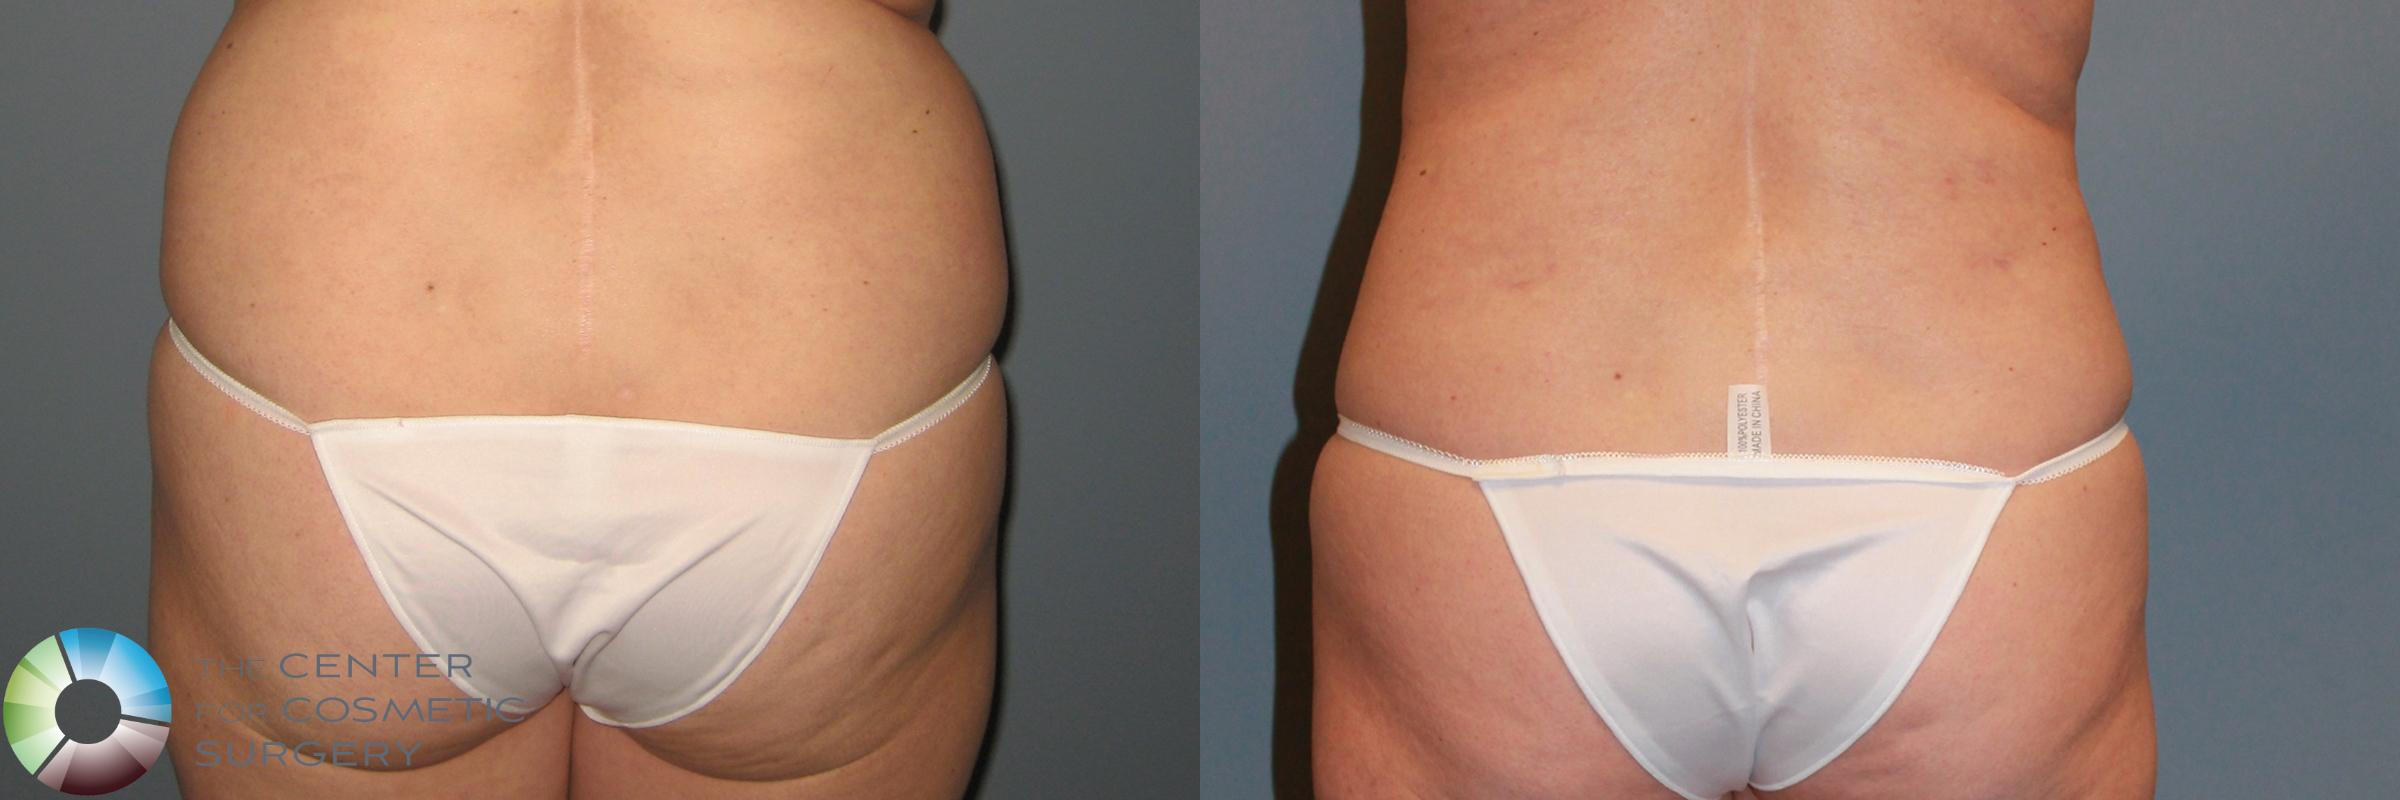 Power-assisted Liposuction Case 869 Before & After View #2 | Golden, CO | The Center for Cosmetic Surgery